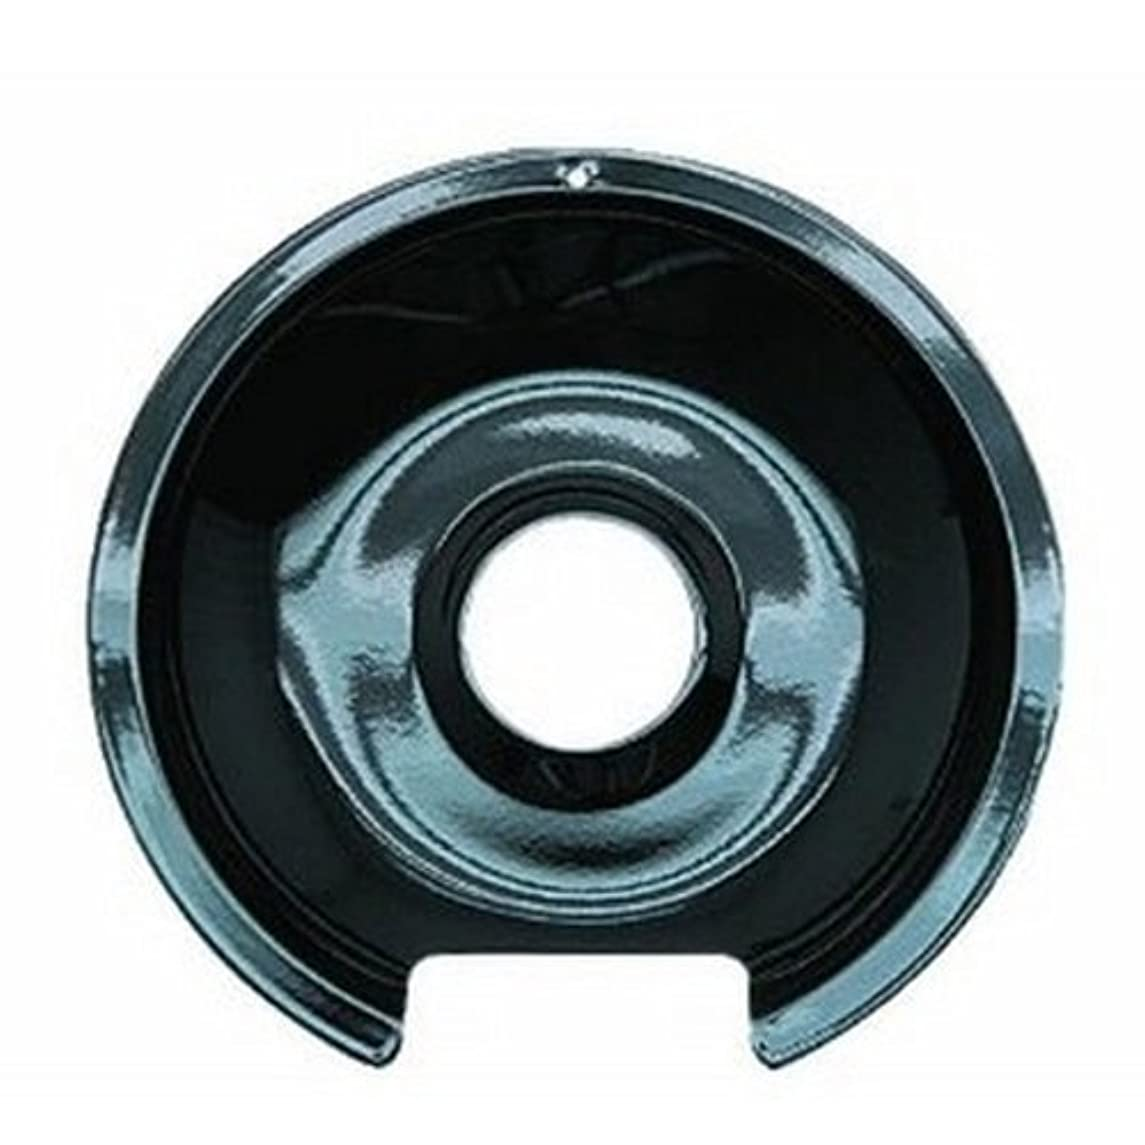 318138500 - Aftermarket Replacement Stove Range Oven Drip Bowl Pan